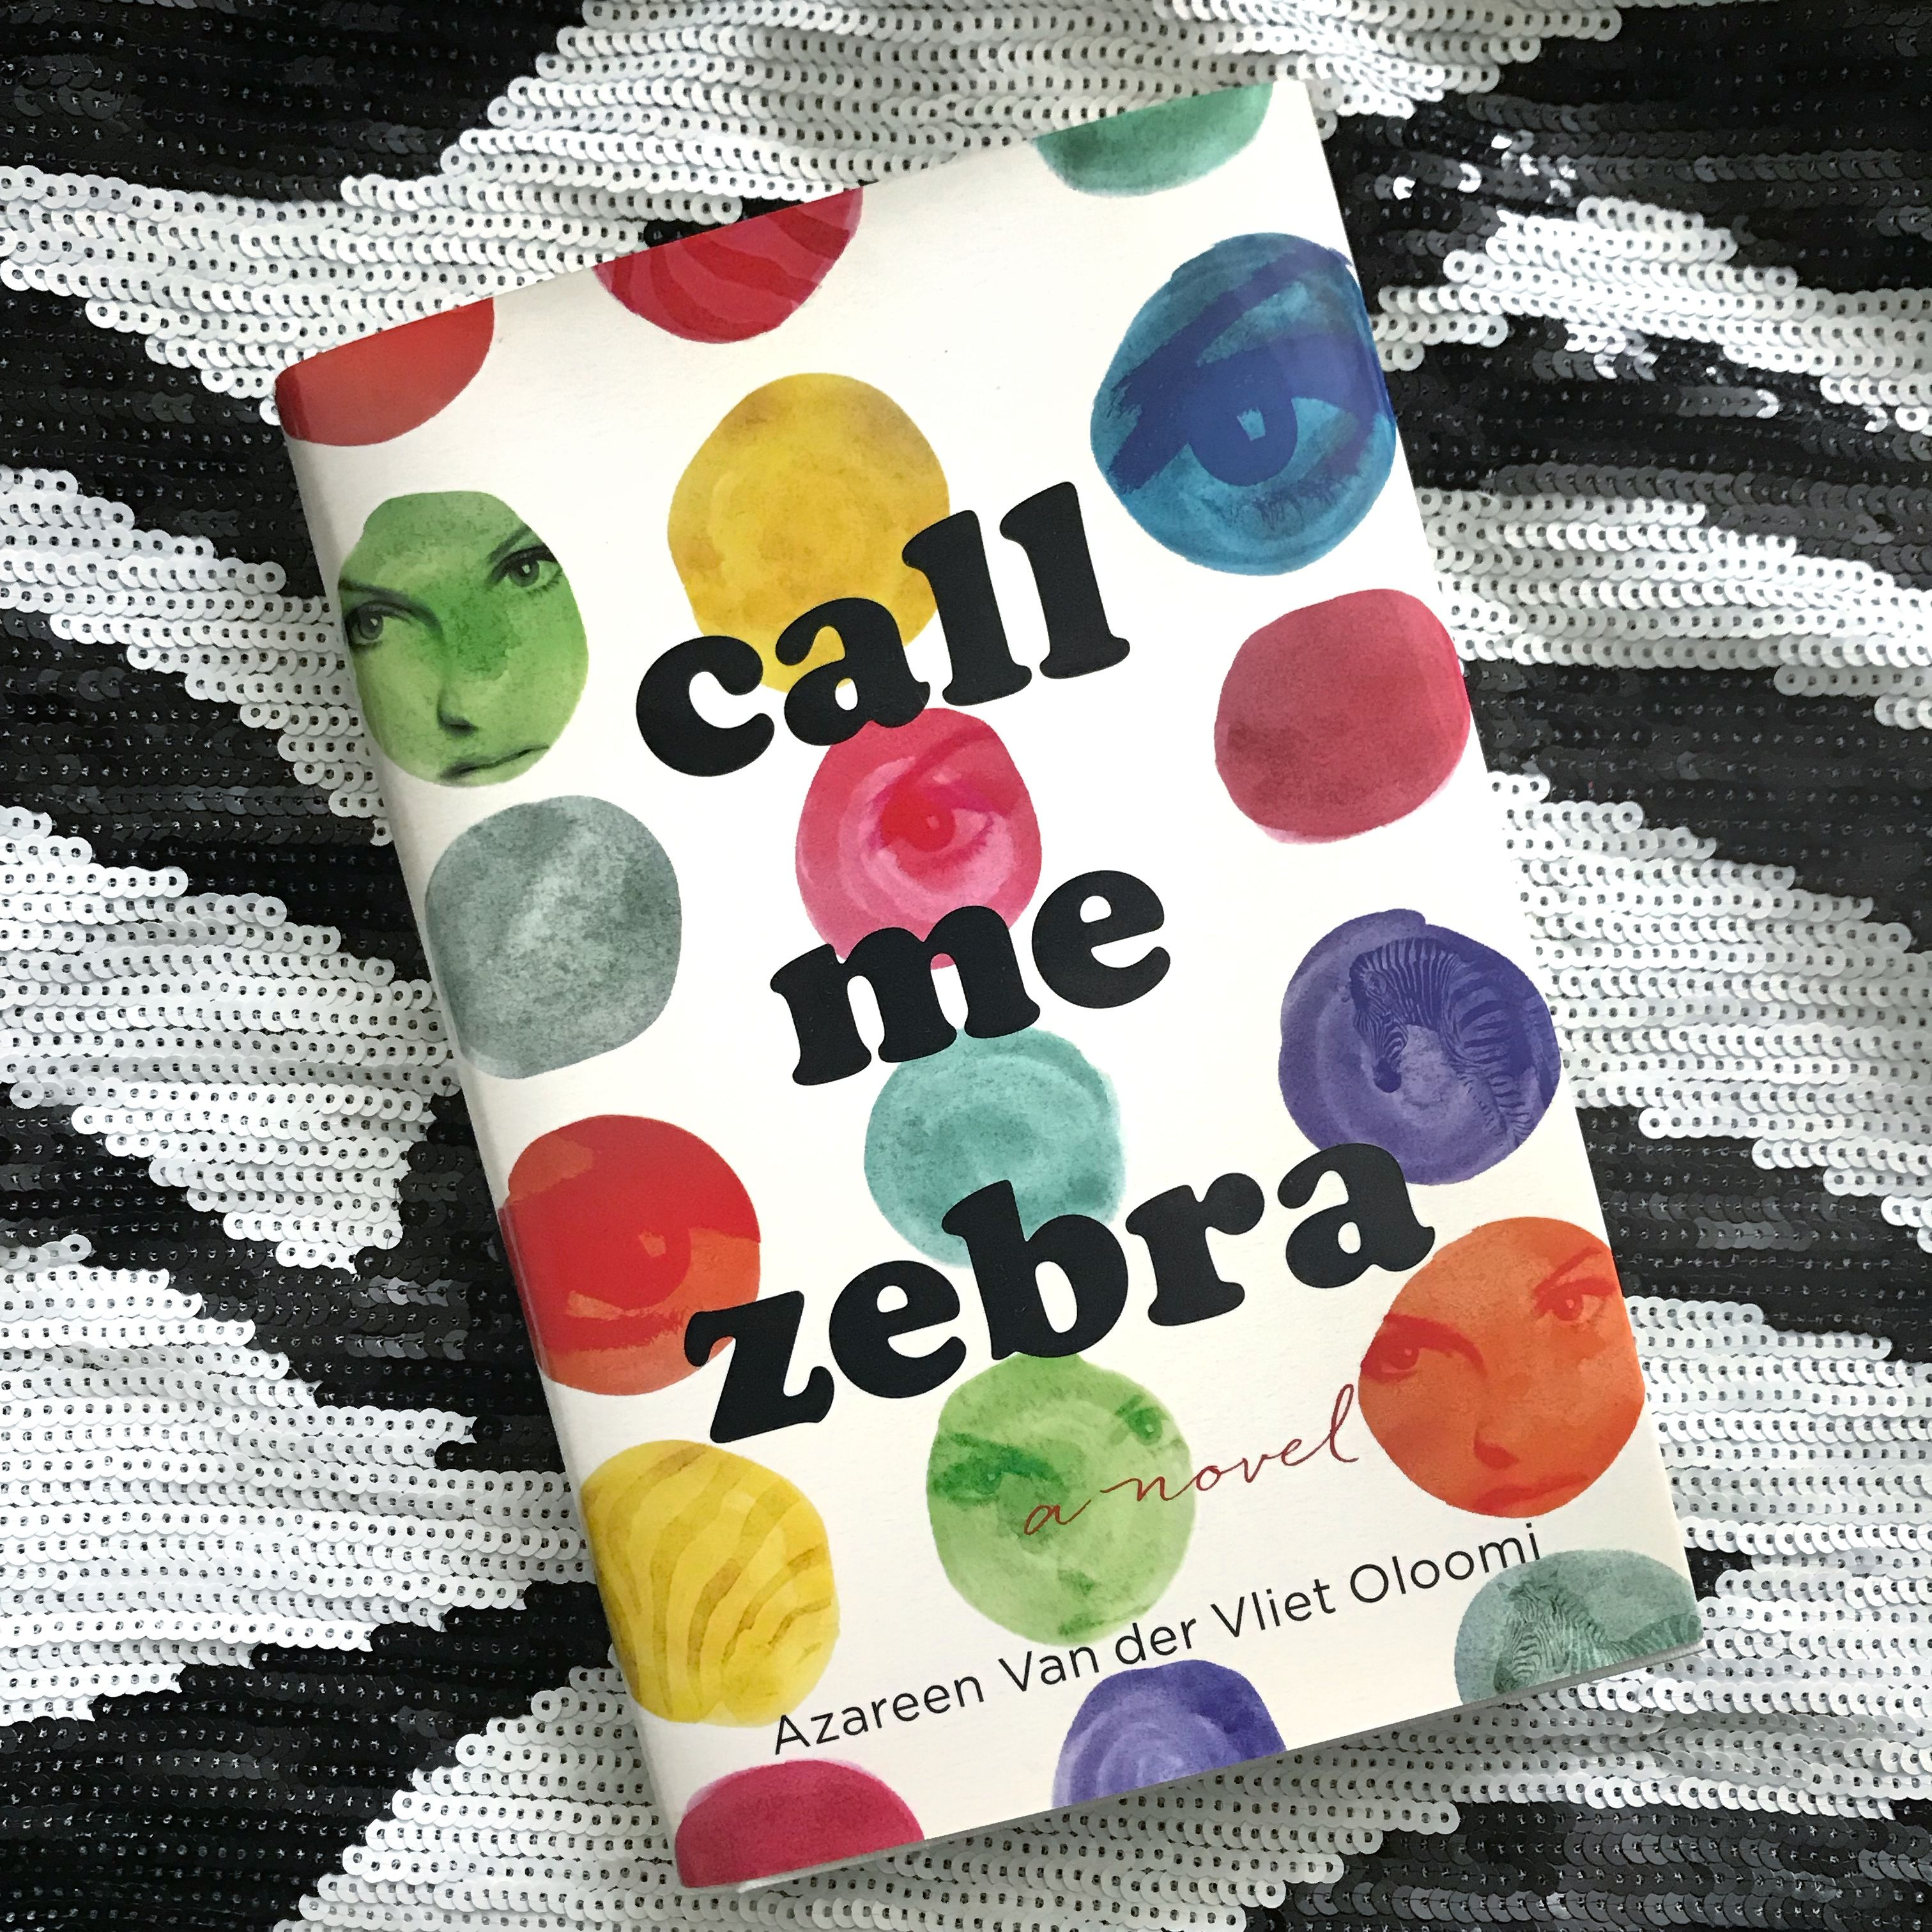 We've been spending time with our book date CALL ME ZEBRA by Azareen Van der Vliet Oloomi. Add this book about books to the TBR!